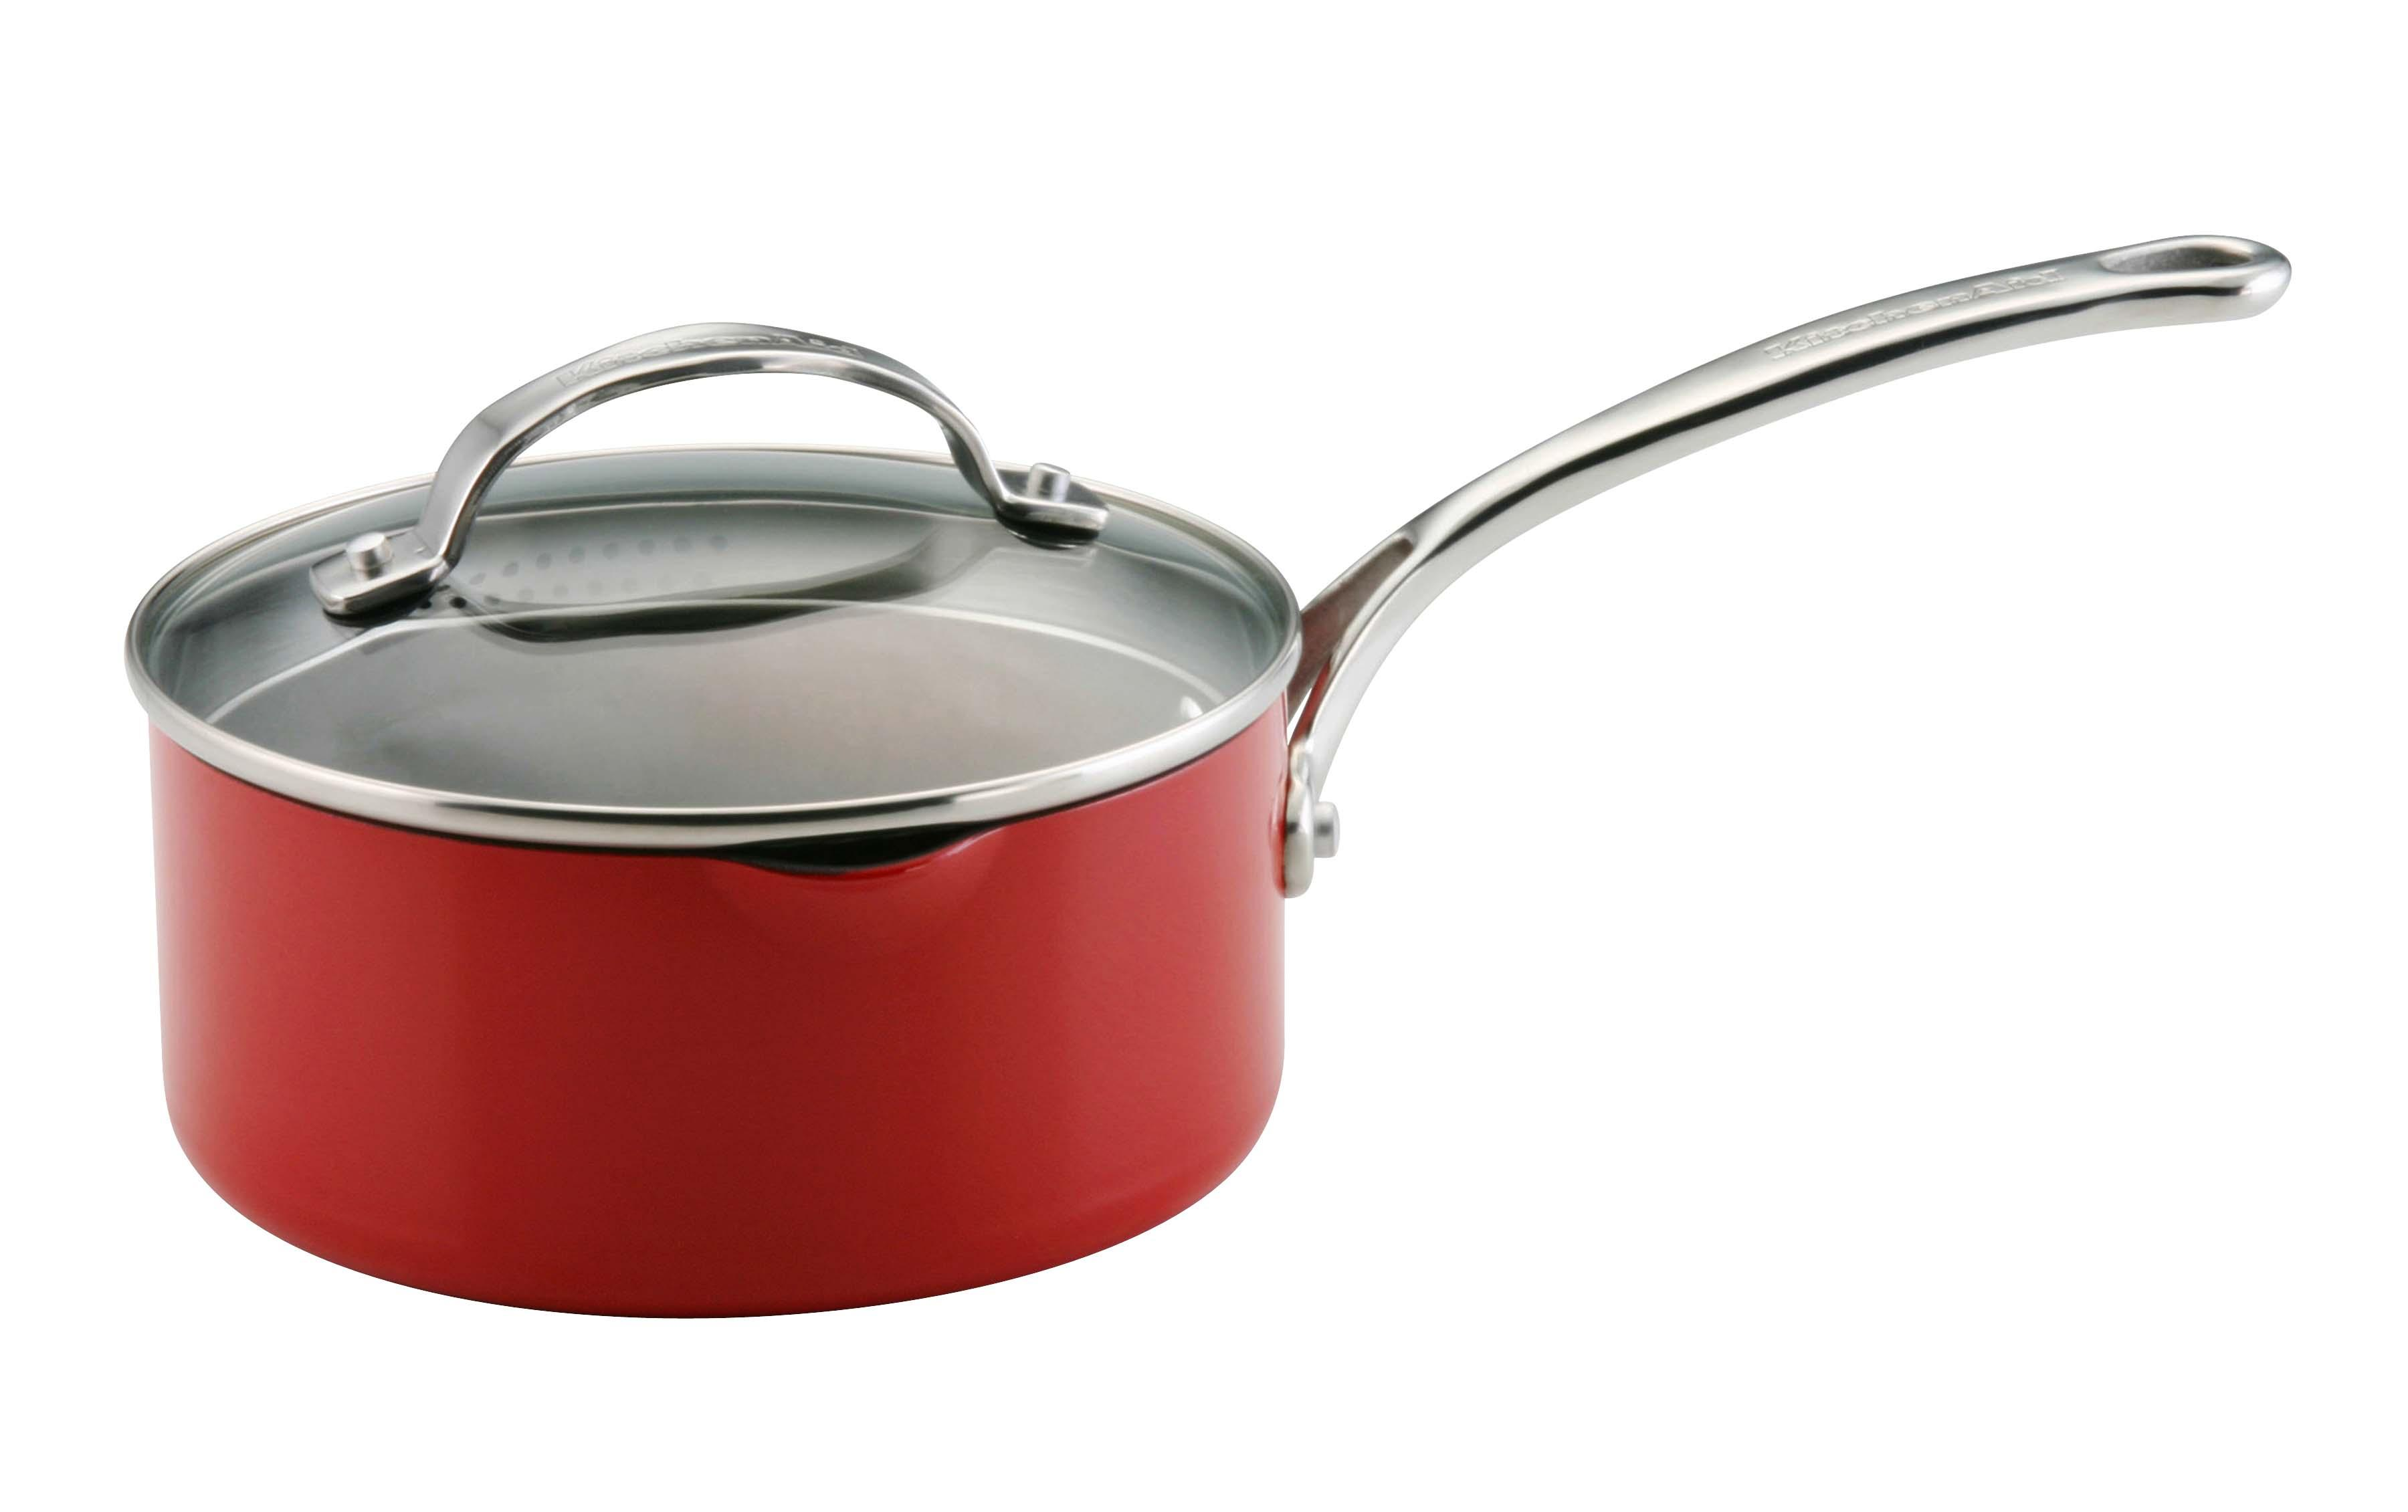 Kitchenaid 12293 red saucepan straining covered 2qt